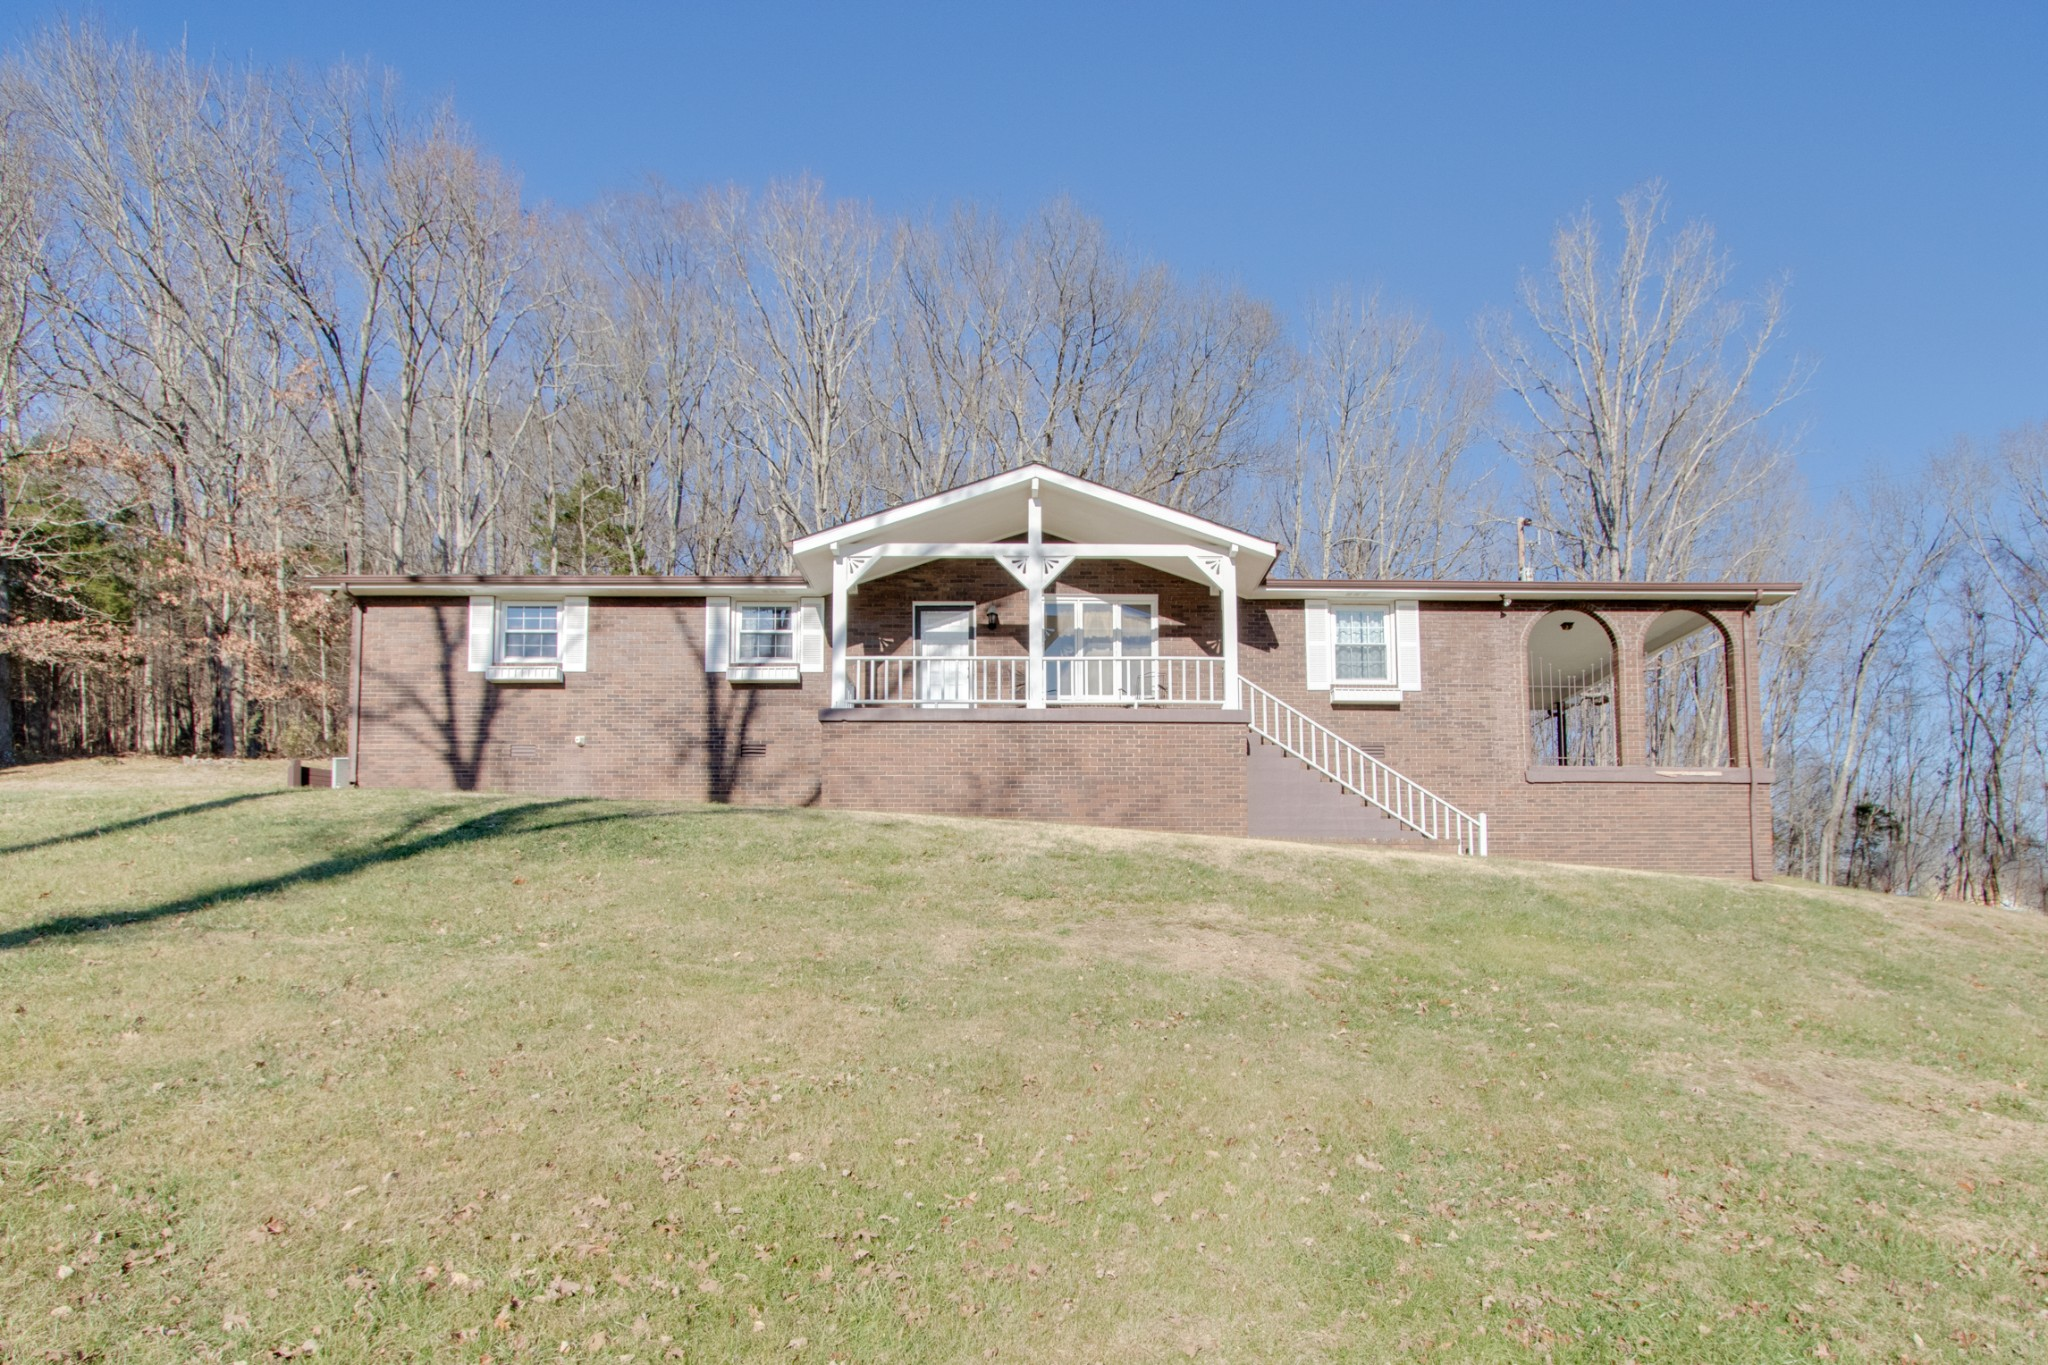 1755 Springfield Hwy, Goodlettsville, TN 37072 - Goodlettsville, TN real estate listing